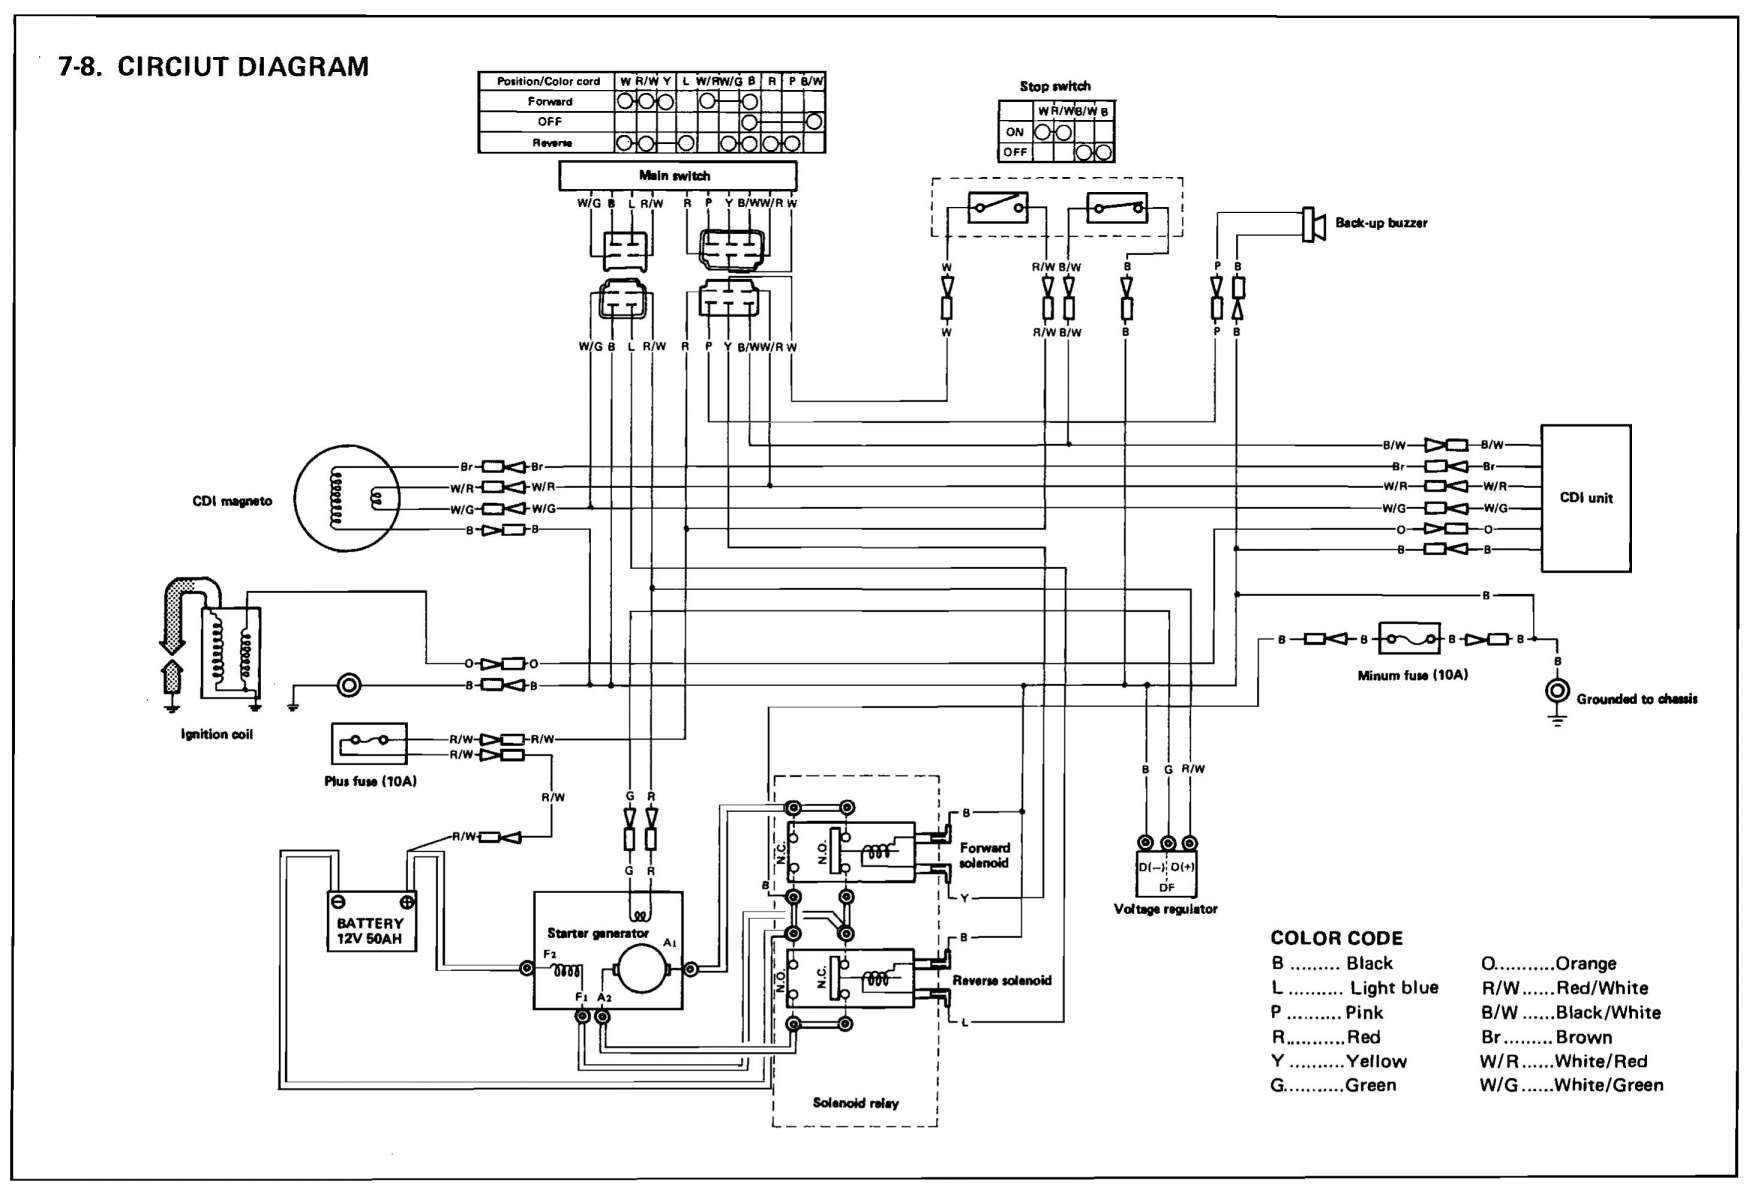 DIAGRAM] 2005 Gem Electric Car Wiring Diagram FULL Version HD Quality Wiring  Diagram - DIAGRAMOK.SCACCHIRUTA.ITDiagram Database - Scacchiruta.it